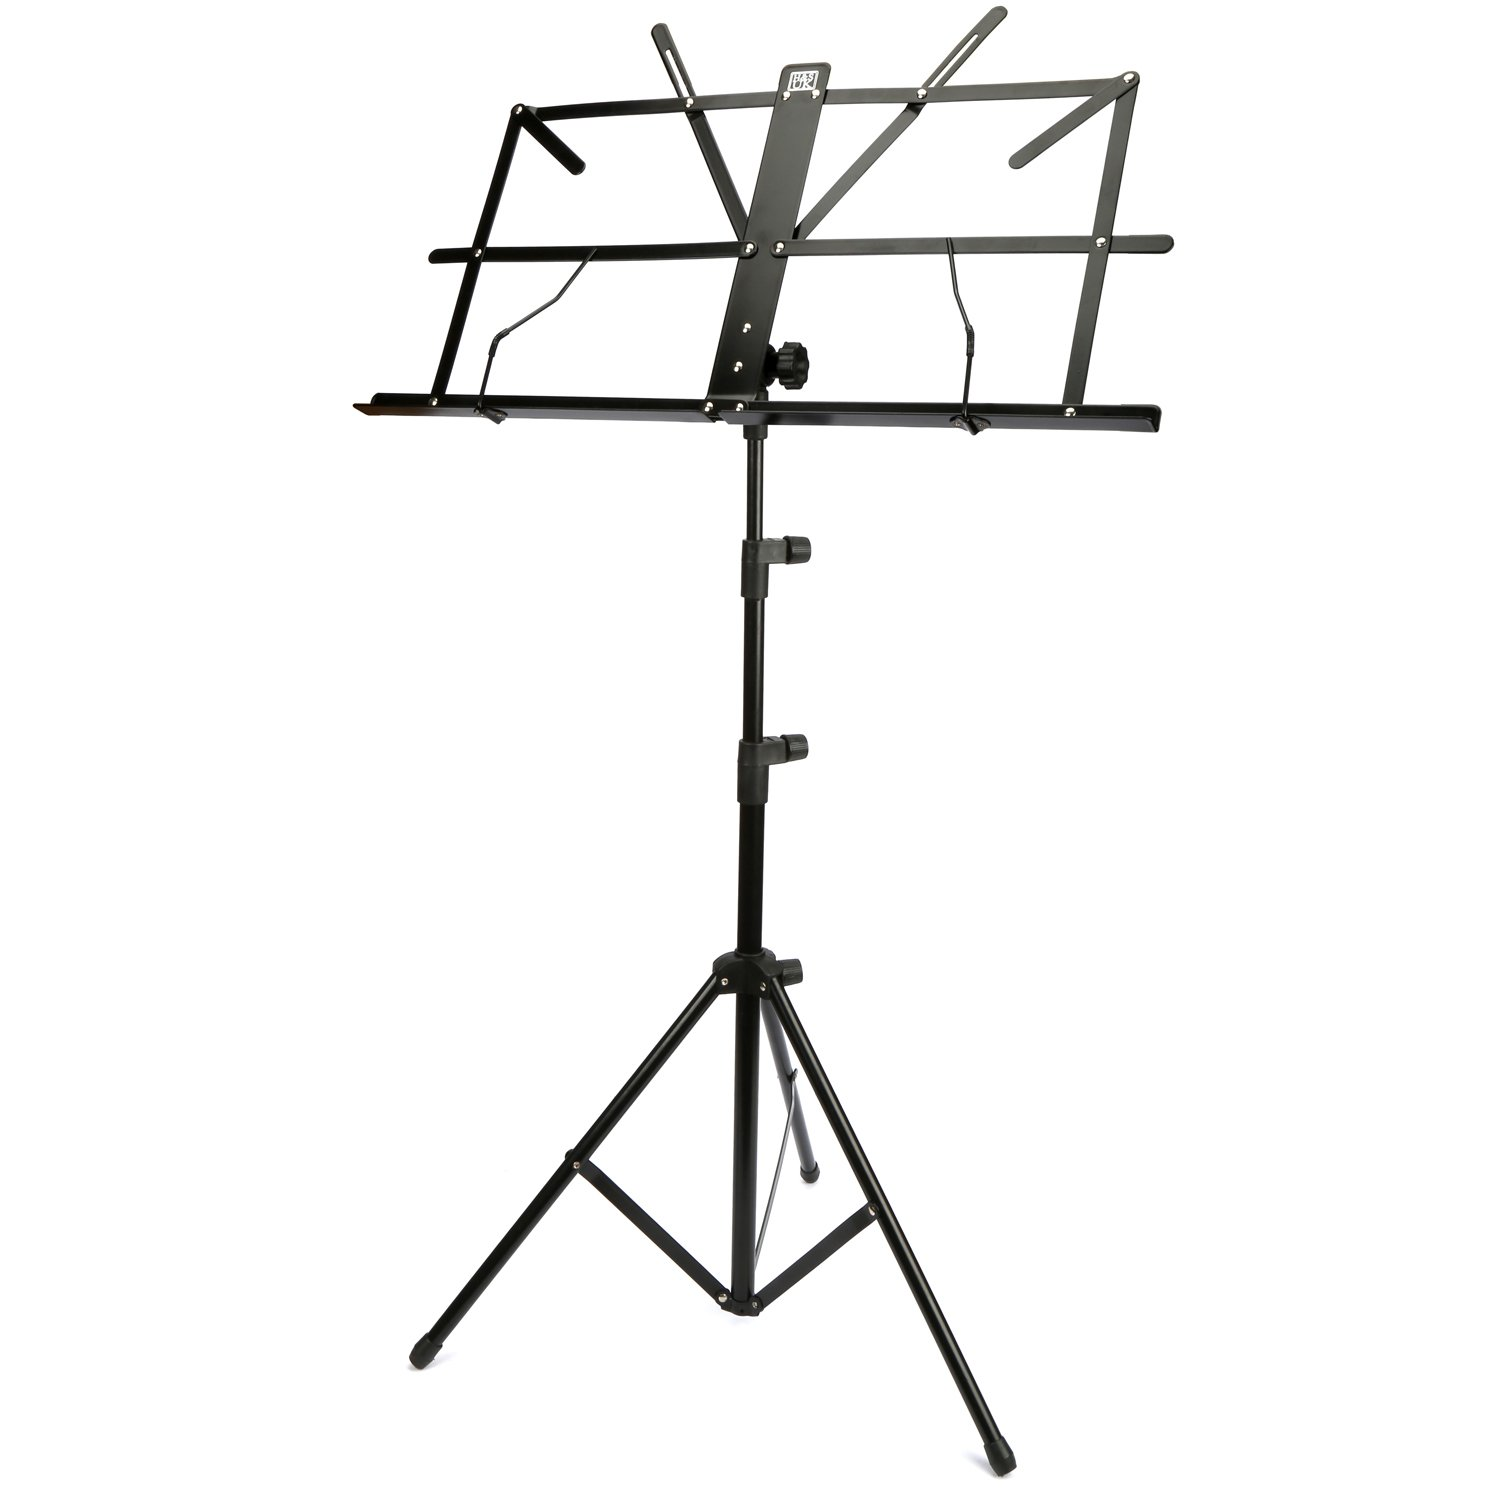 music note stand sheet music holder lightweight adjustable foldable carry case ebay. Black Bedroom Furniture Sets. Home Design Ideas